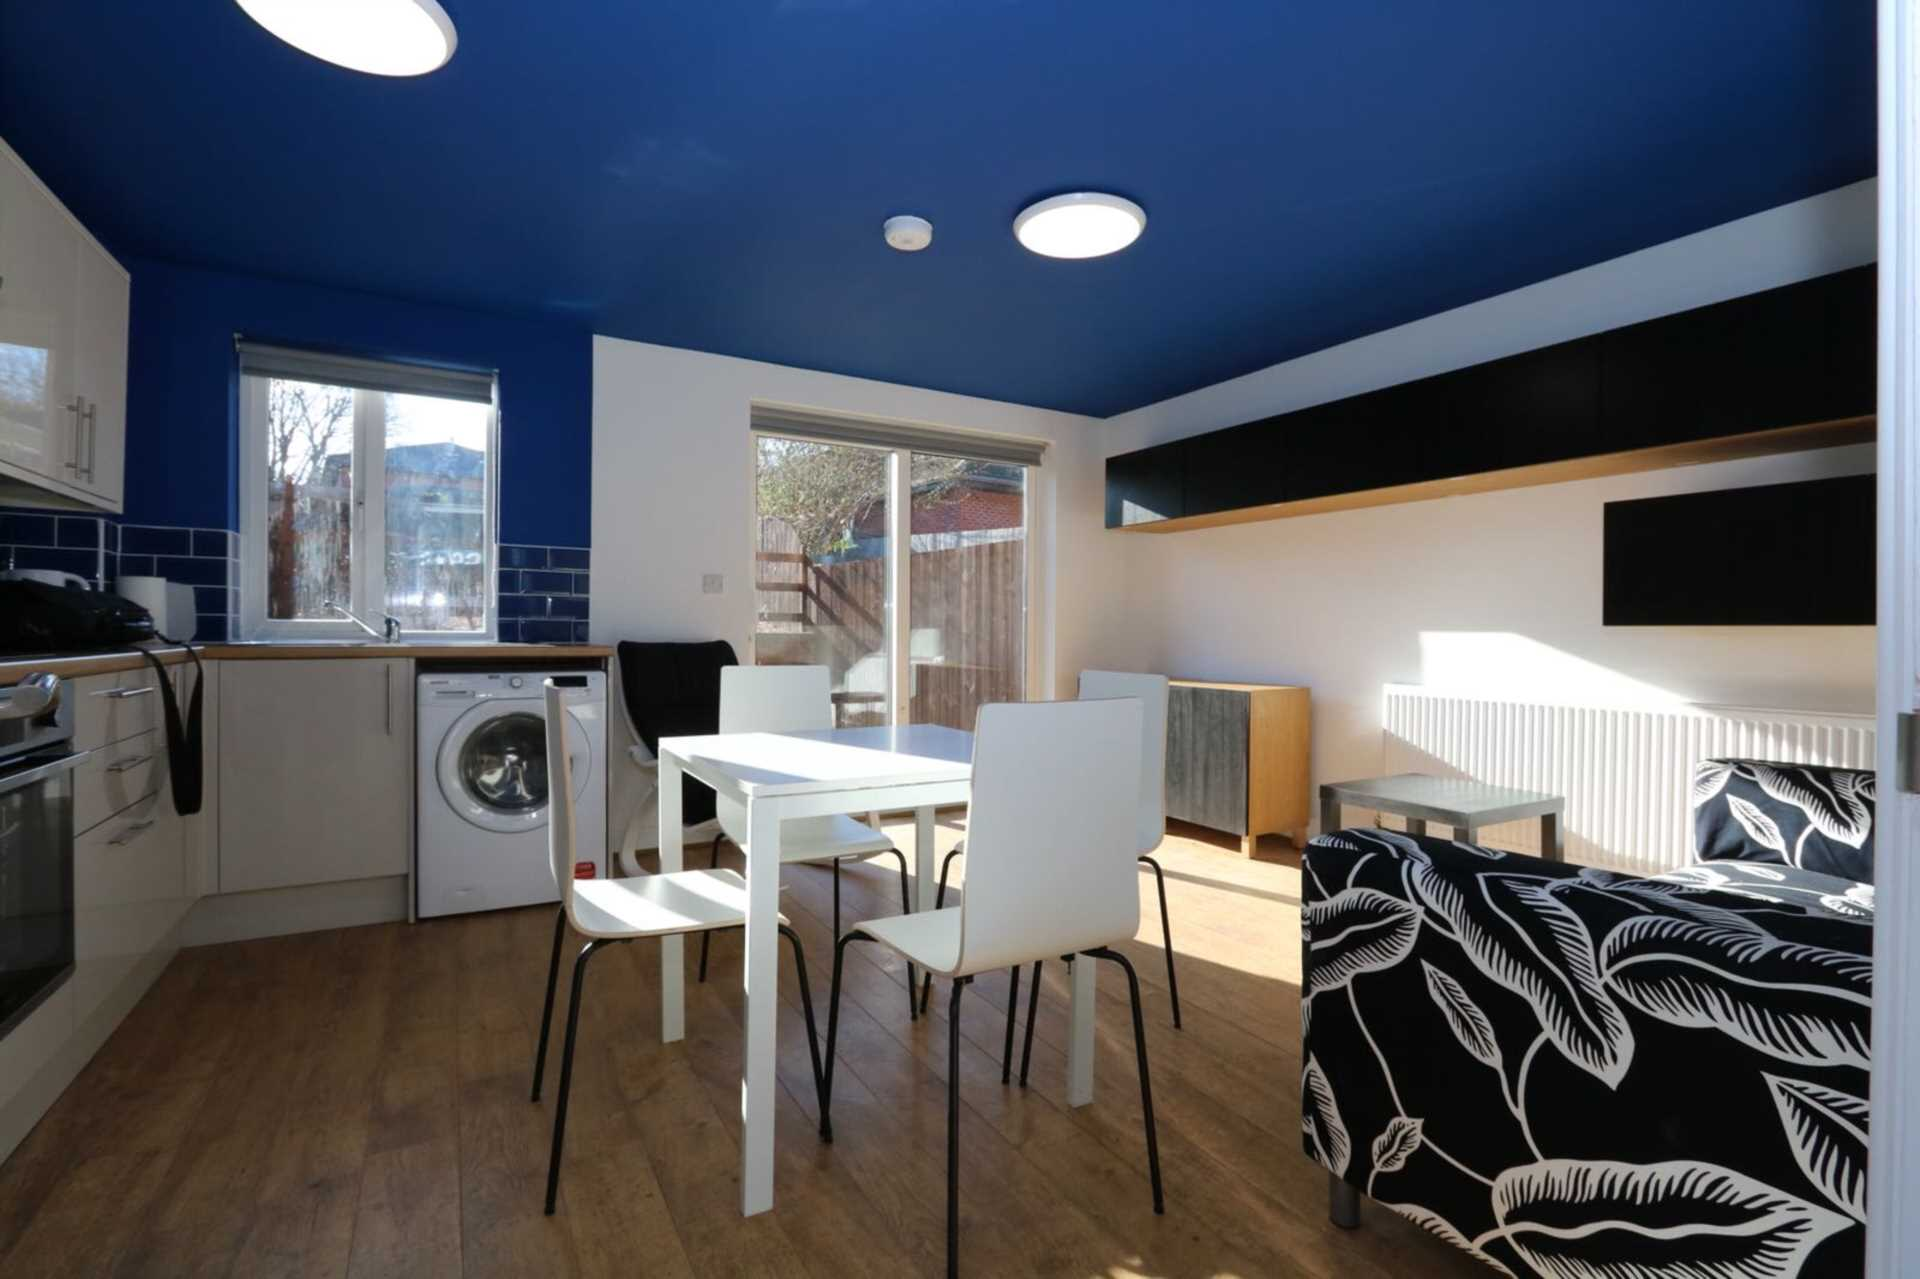 Spon End - 3 bedroom 3 bathroom, student home fully furnished, WIFI & bills included - NO FEES, Image 8